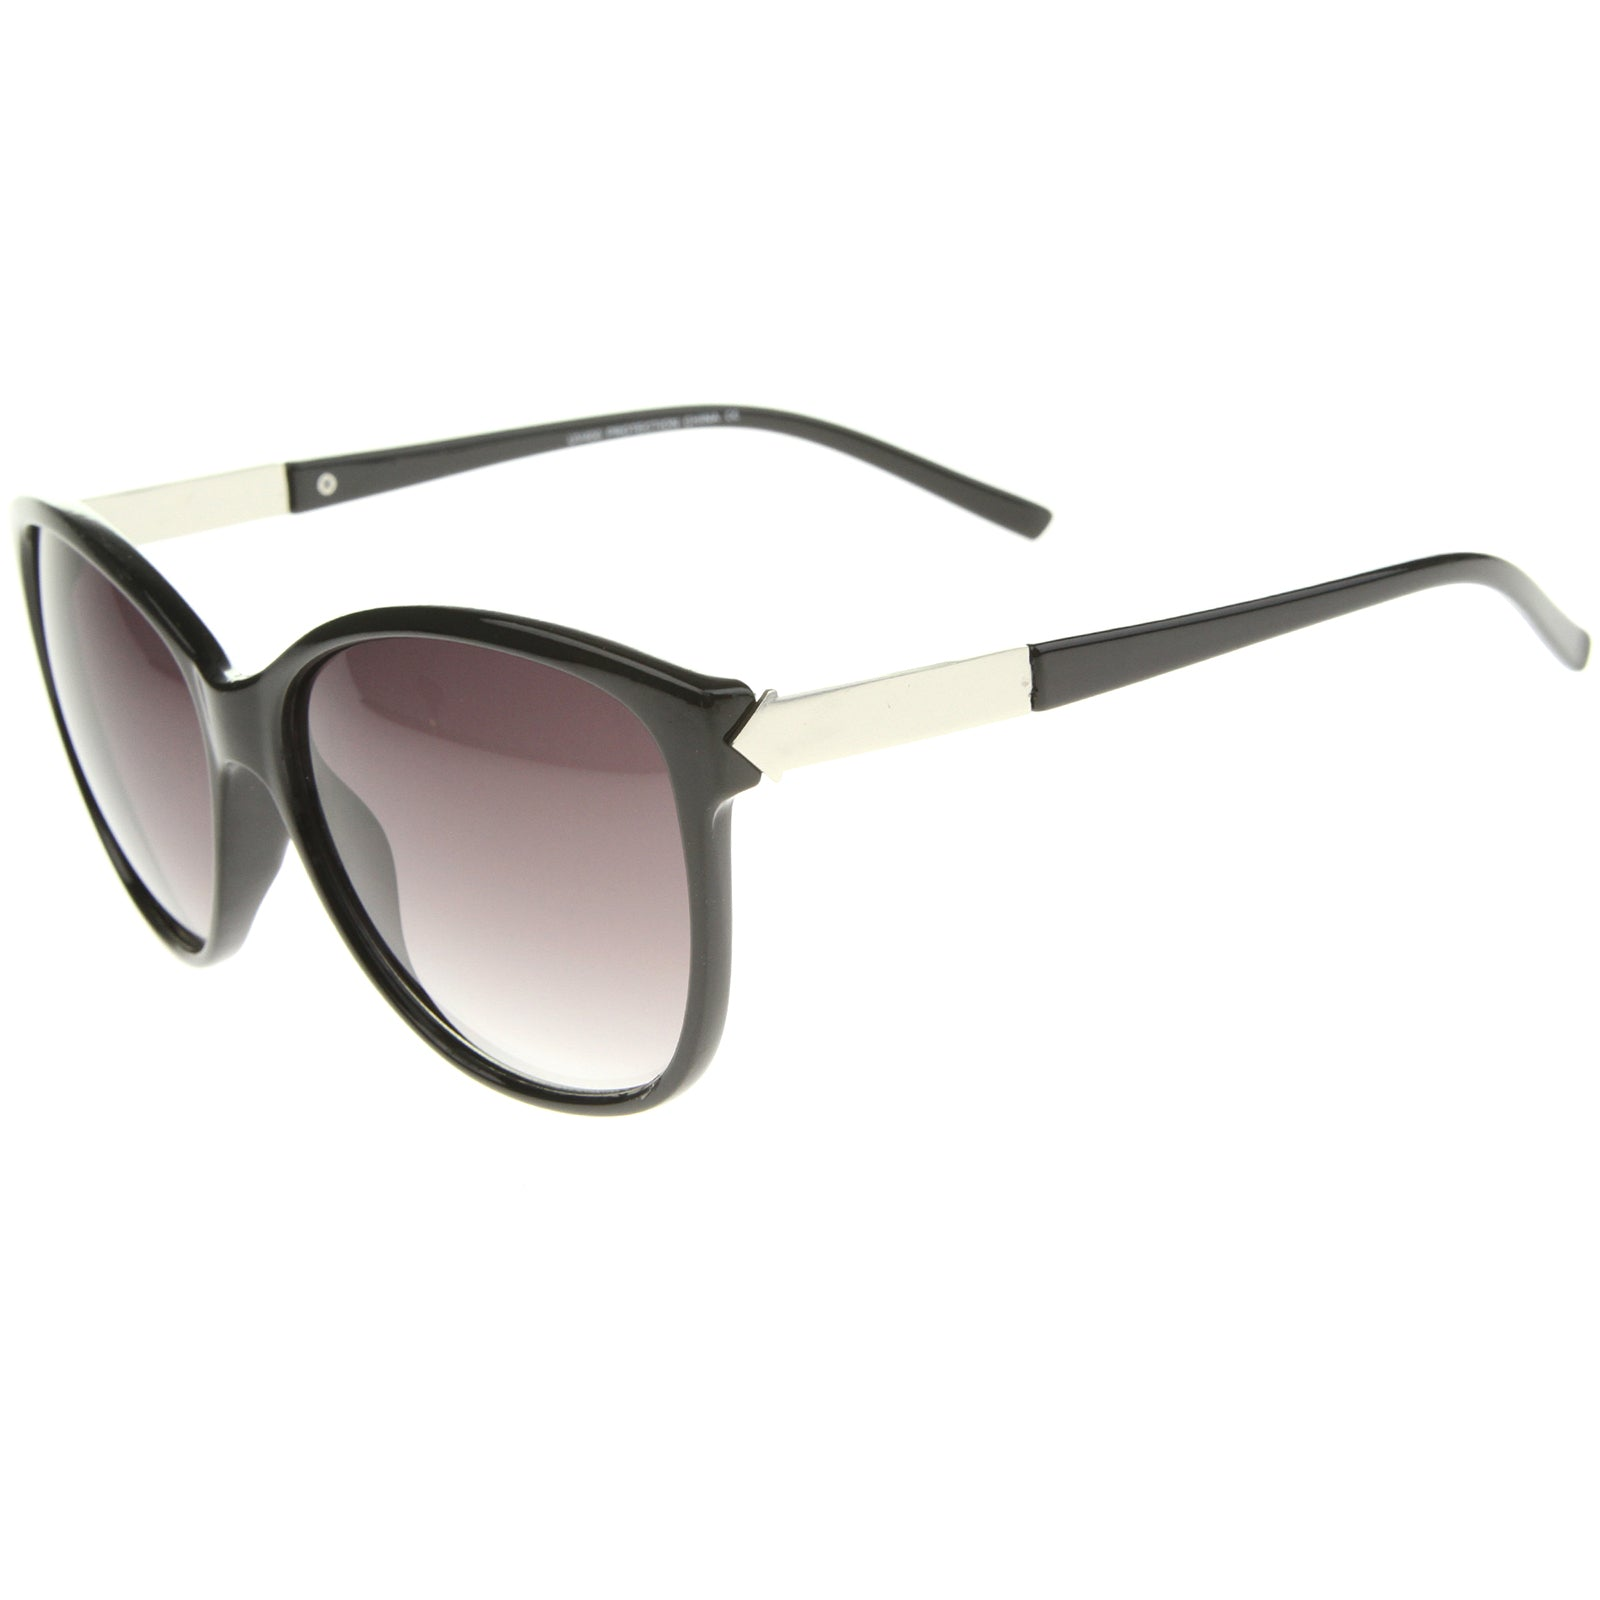 Women's Glam Fashion Metal Temple Oversize Cat Eye Sunglasses 59mm - sunglass.la - 7